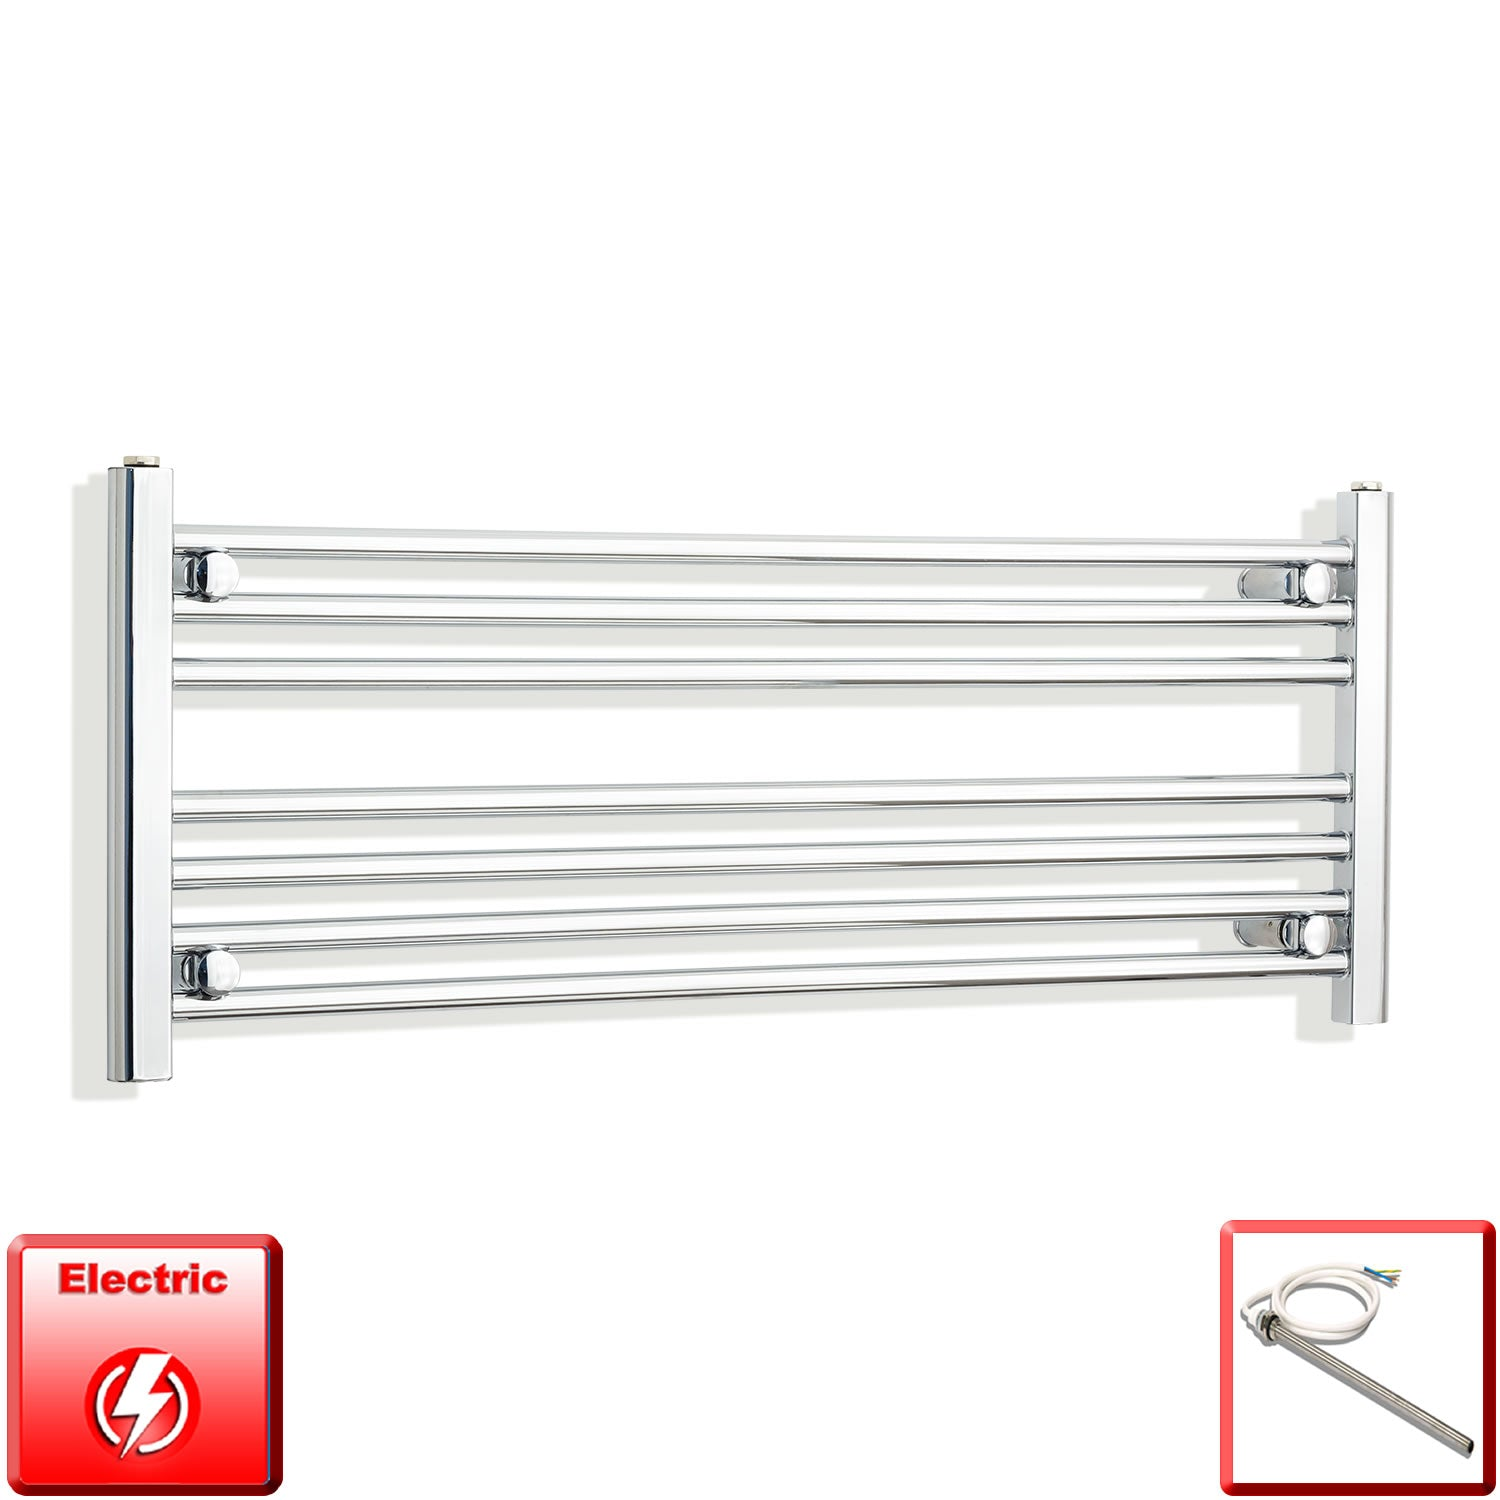 1200mm Wide 400mm High Pre-Filled Chrome Electric Towel Rail Radiator With Single Heat Element